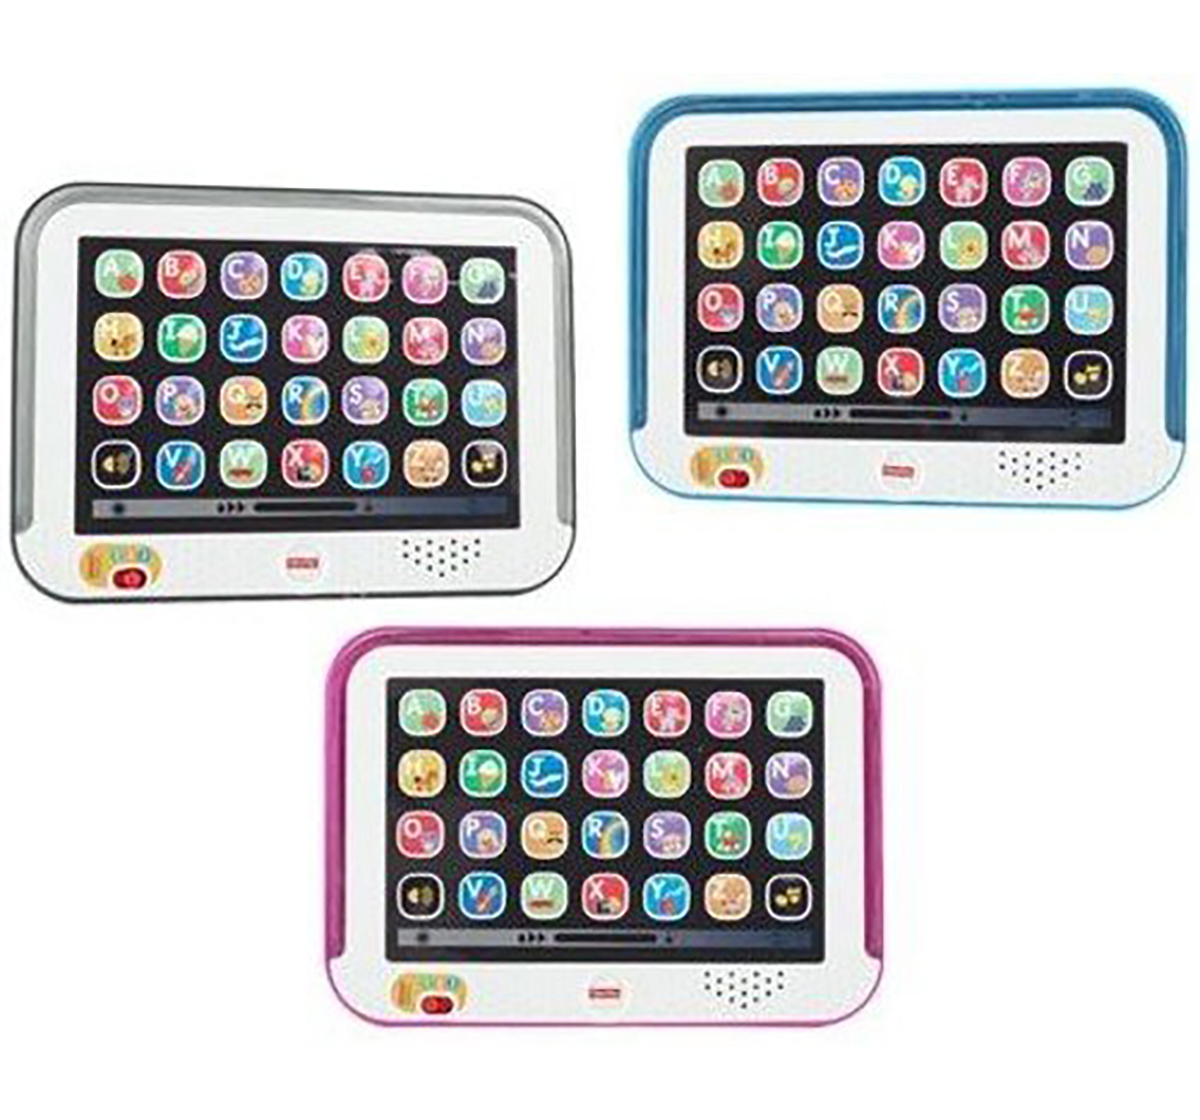 Fisher-Price   Fisher Price Laugh N Learn Smart Stage Tablet Learning Toys for Kids age 1Y+